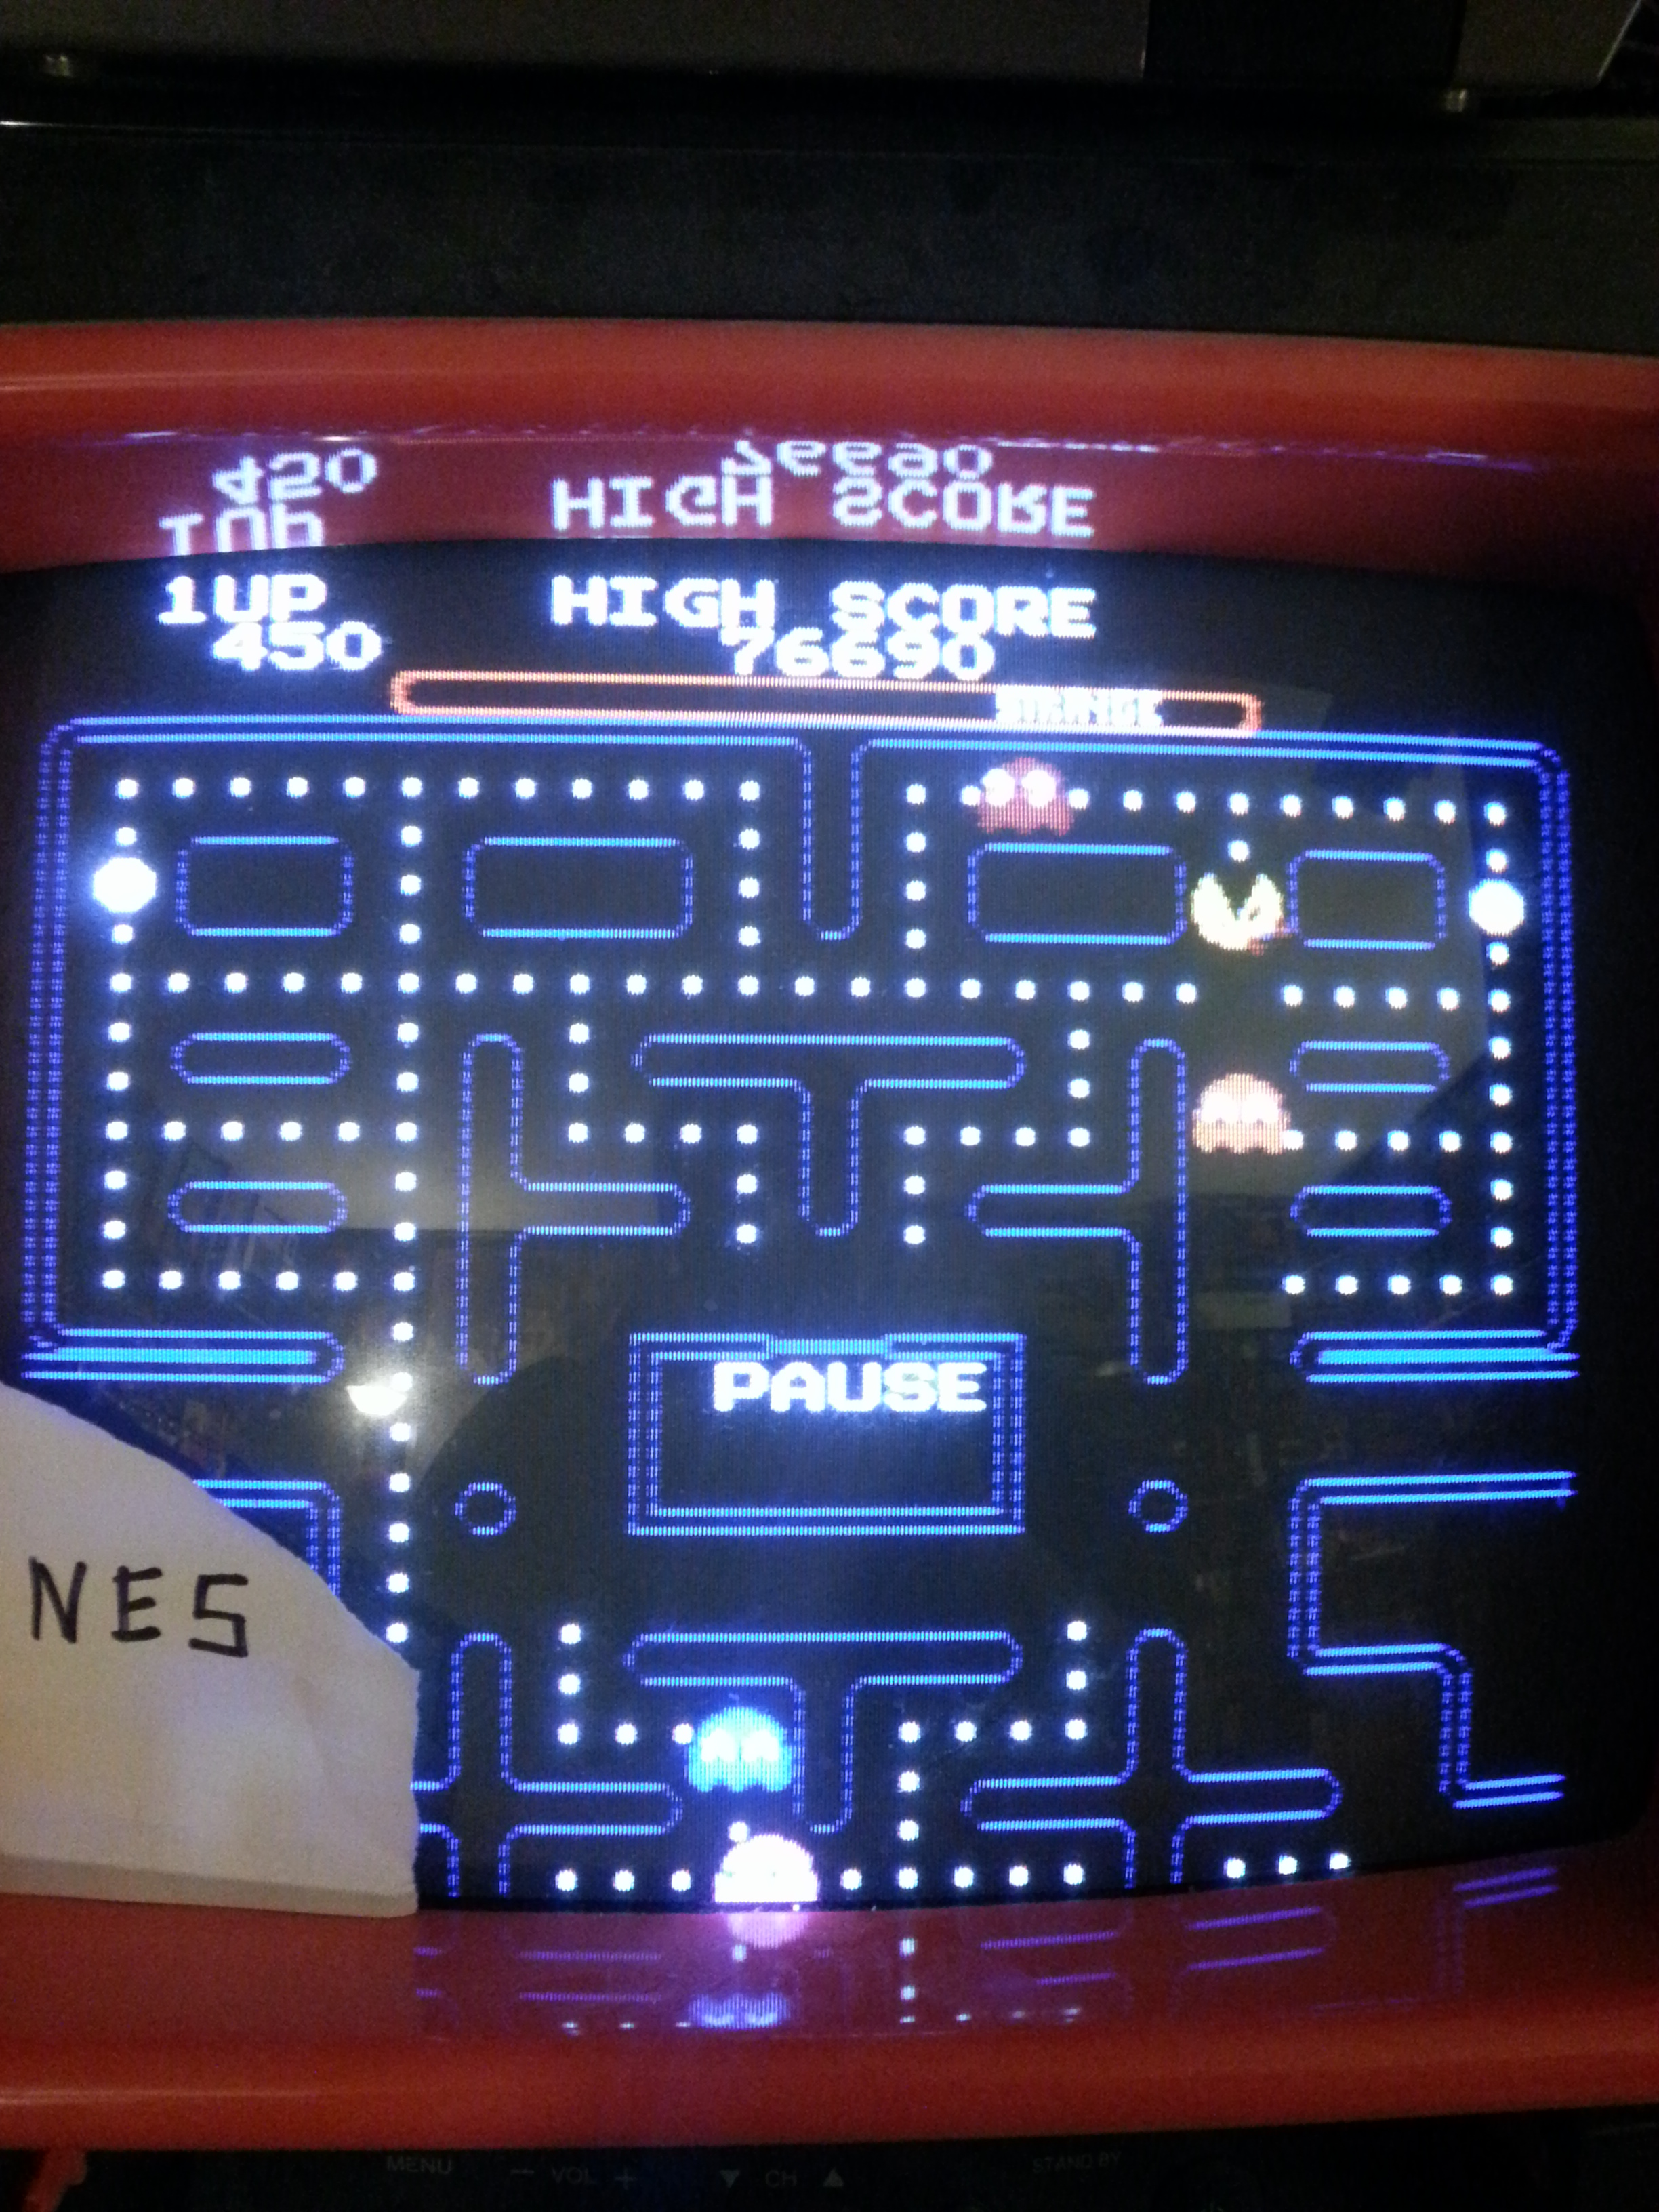 Ms. Pac-Man [Tengen] [Pac-Booster: OFF/Difficulty: Normal/Maze Selection: Strange] 76,690 points